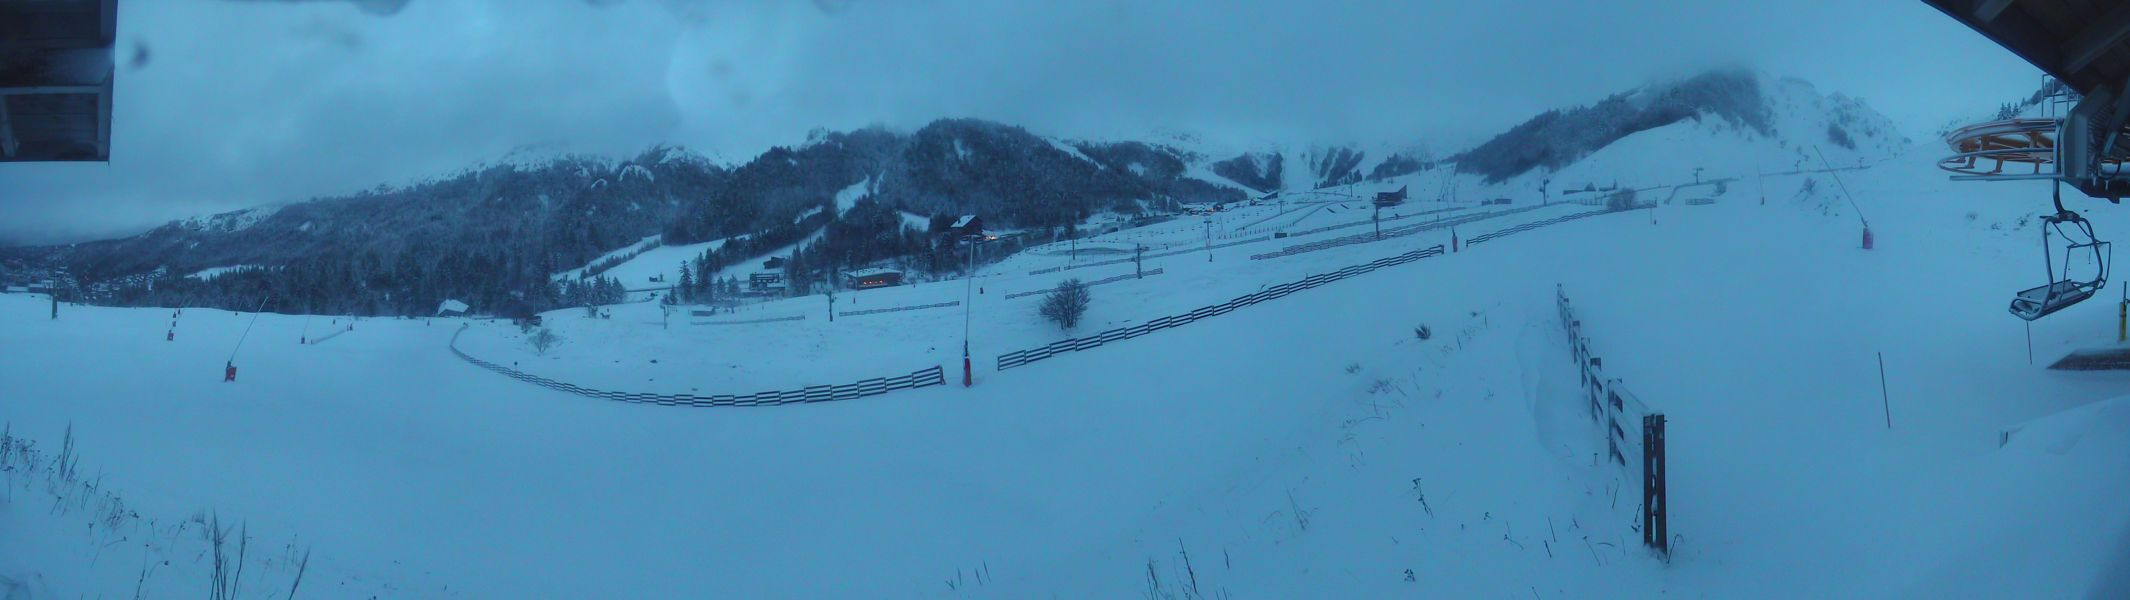 Webcam du bas des pistes